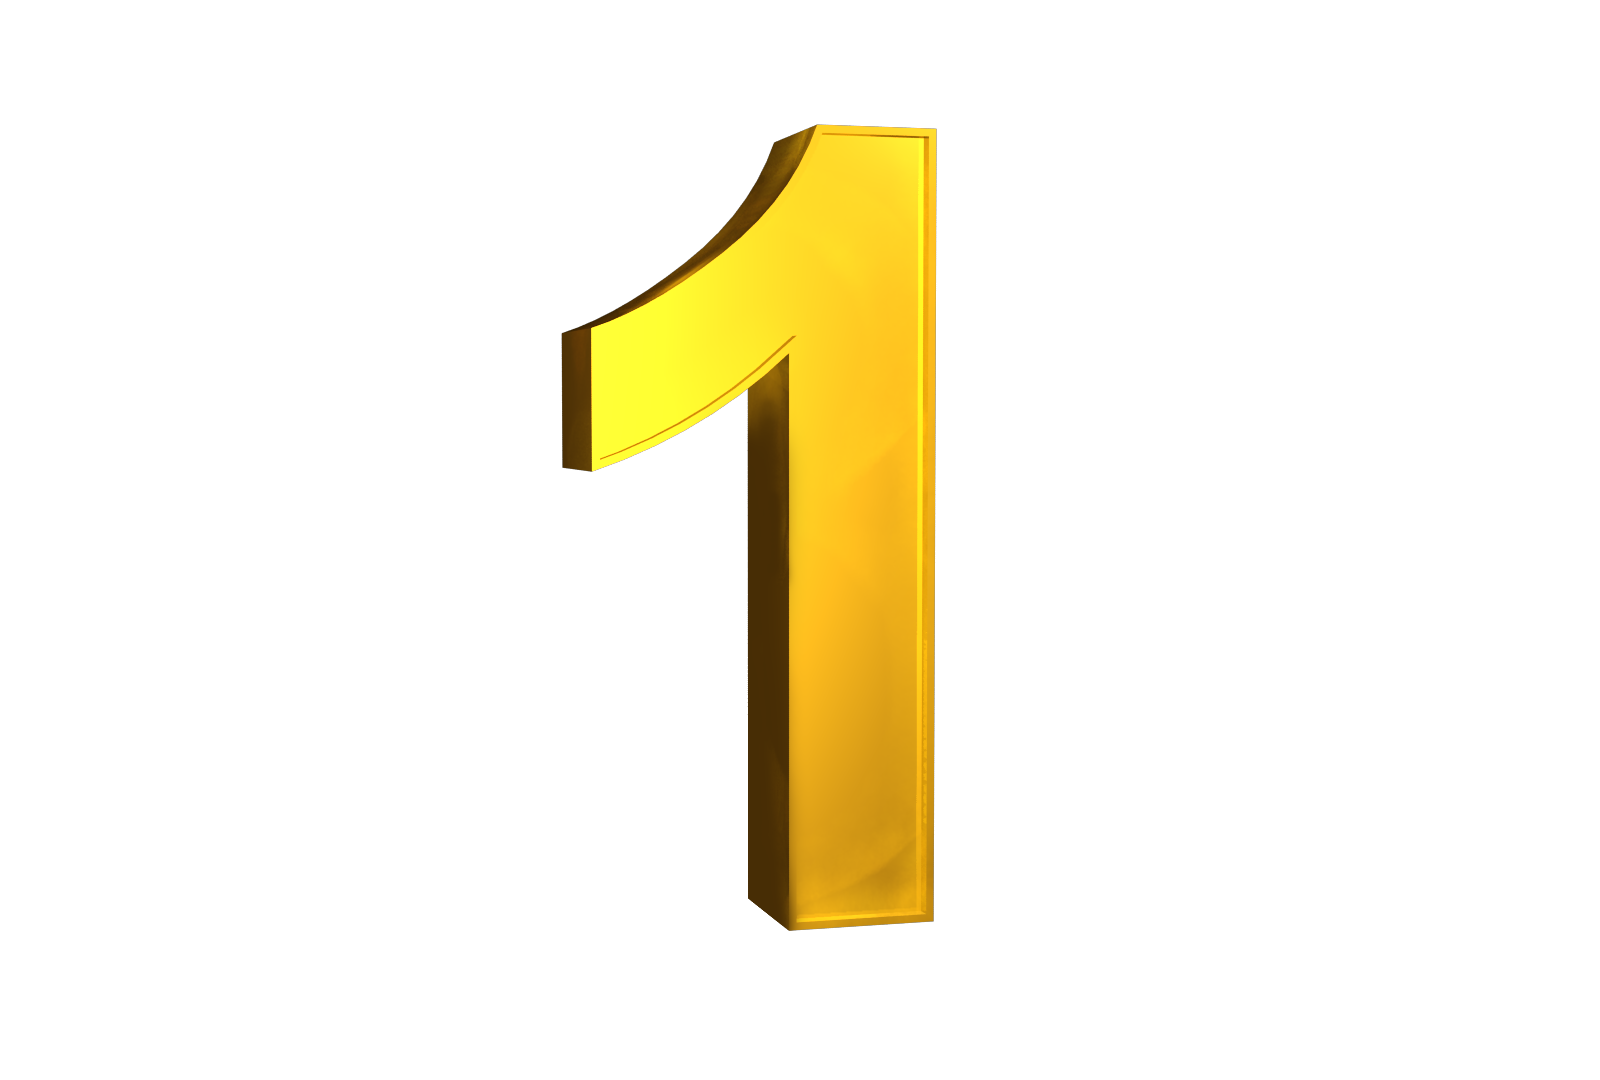 Number 1 clipart yellow. Png free download